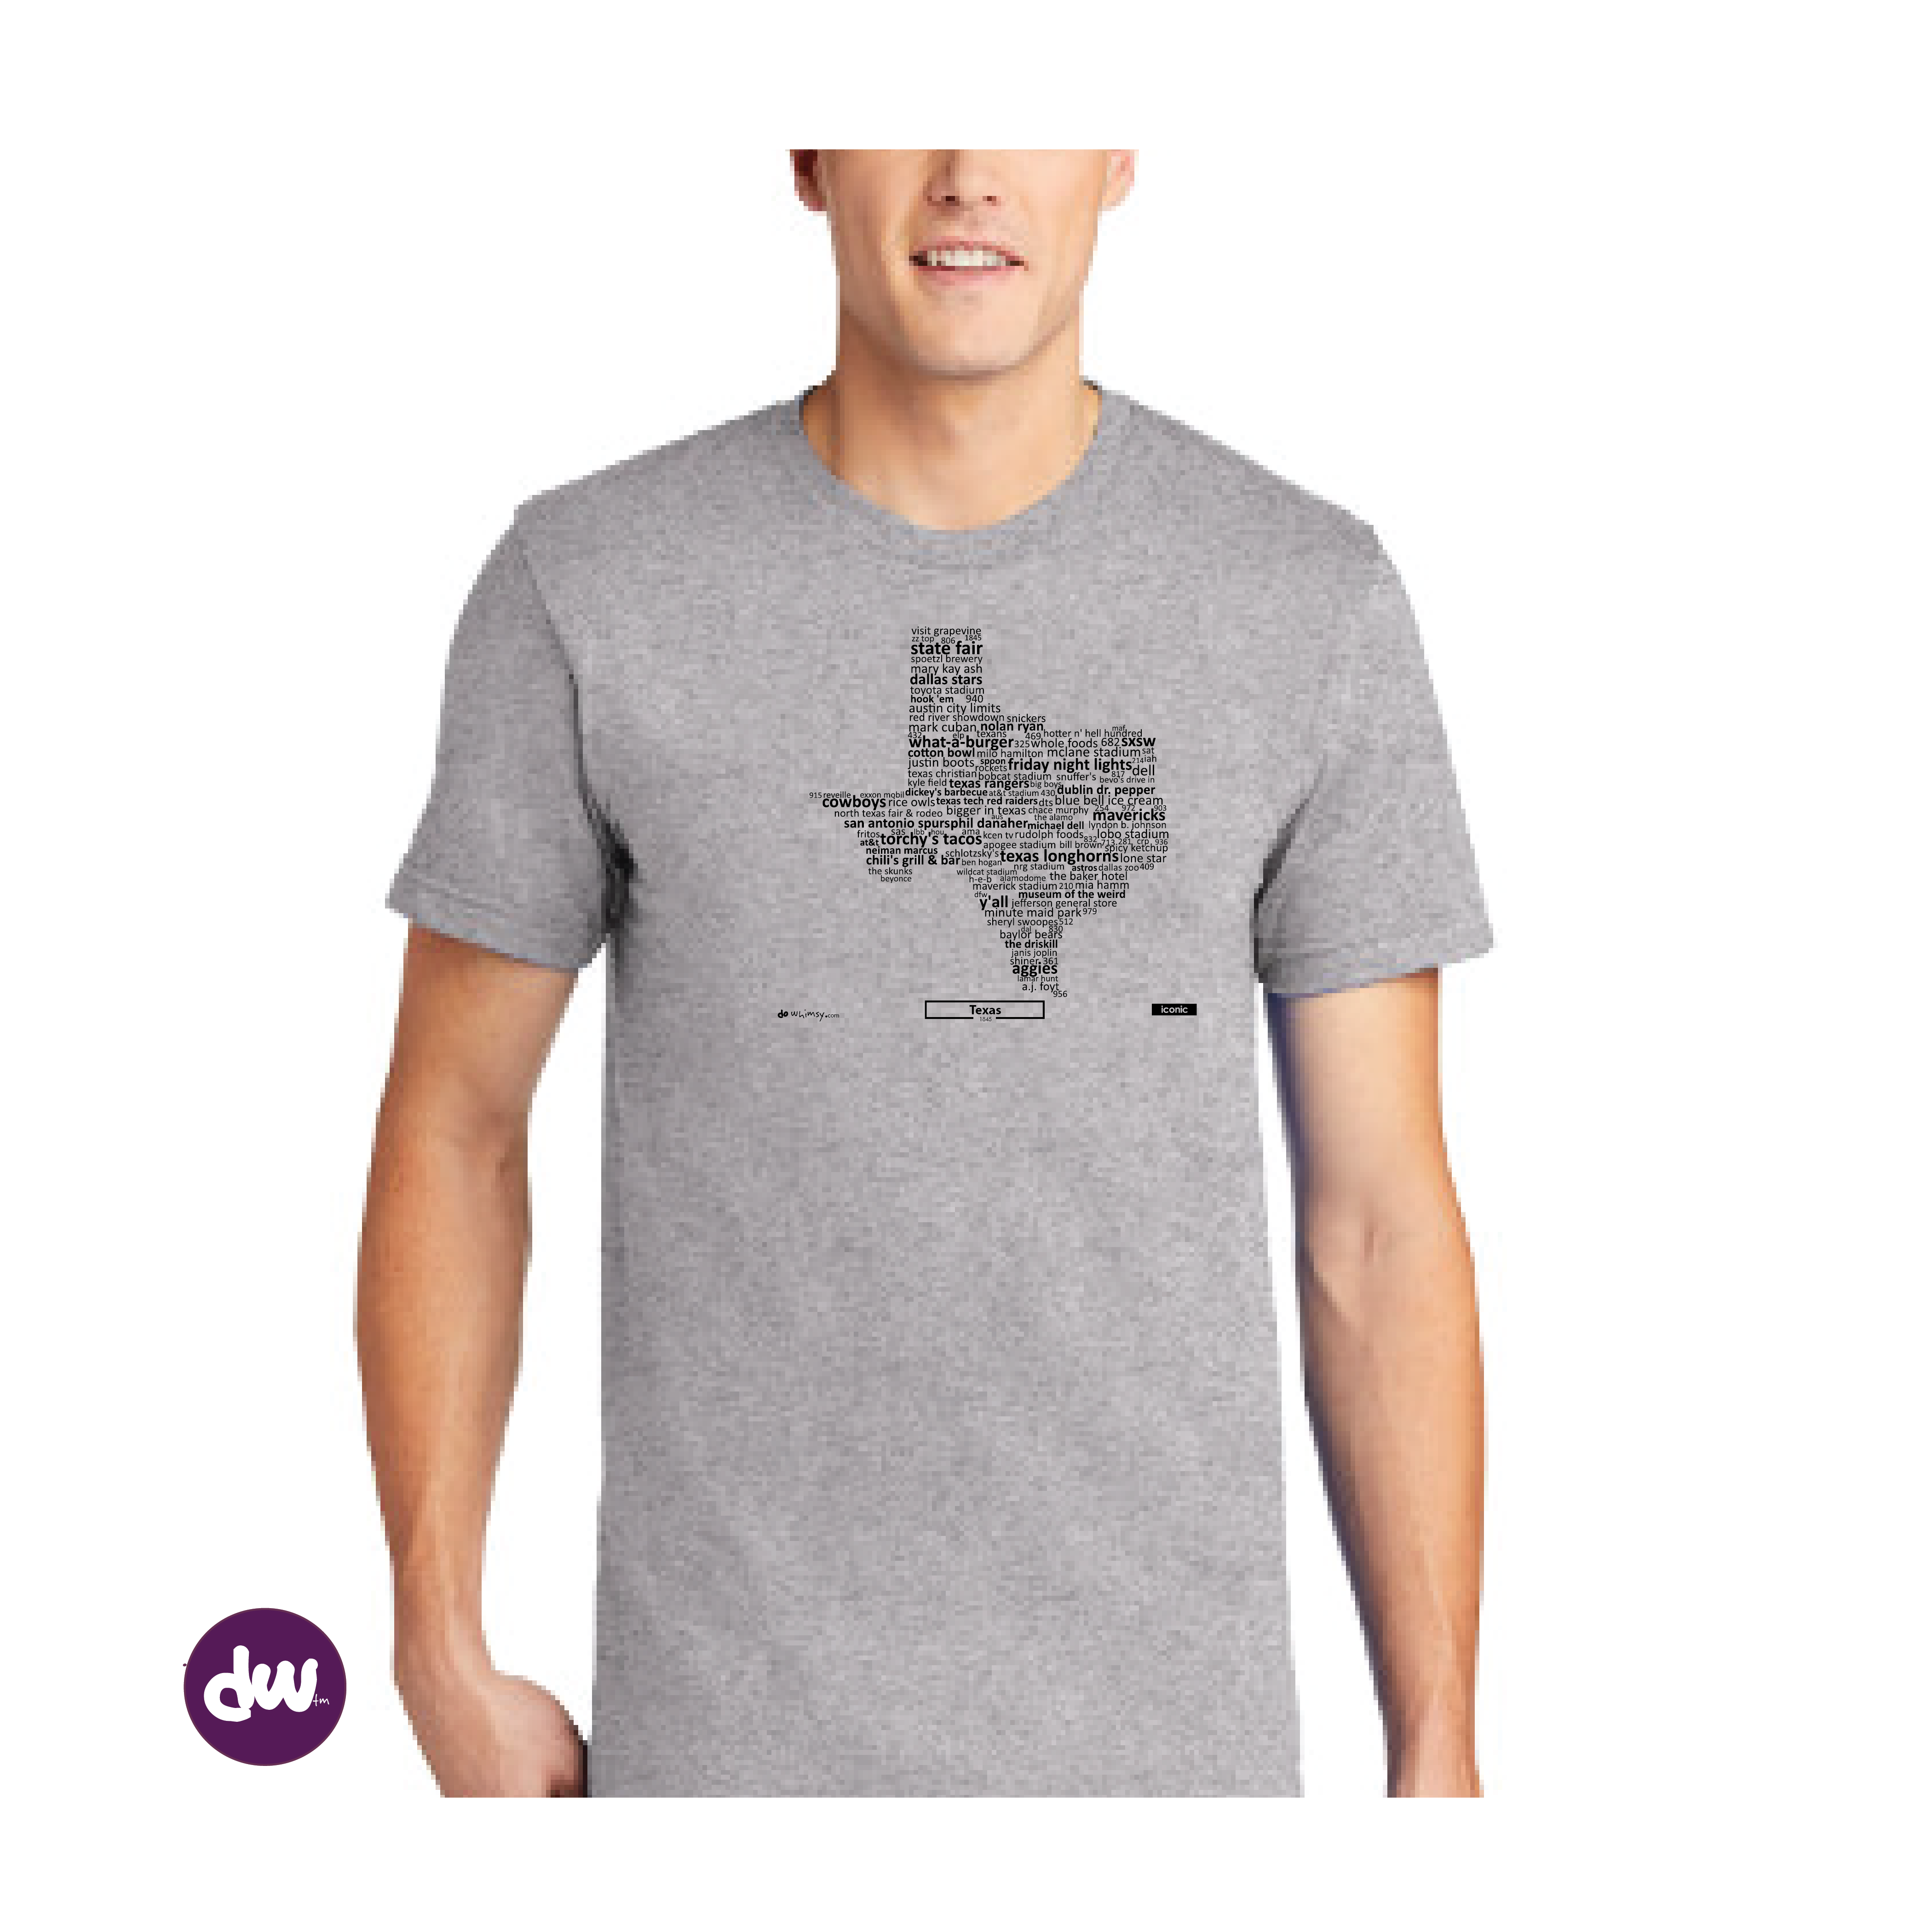 Iconic Texas - All Products (Shirt, Art, Frames (R))